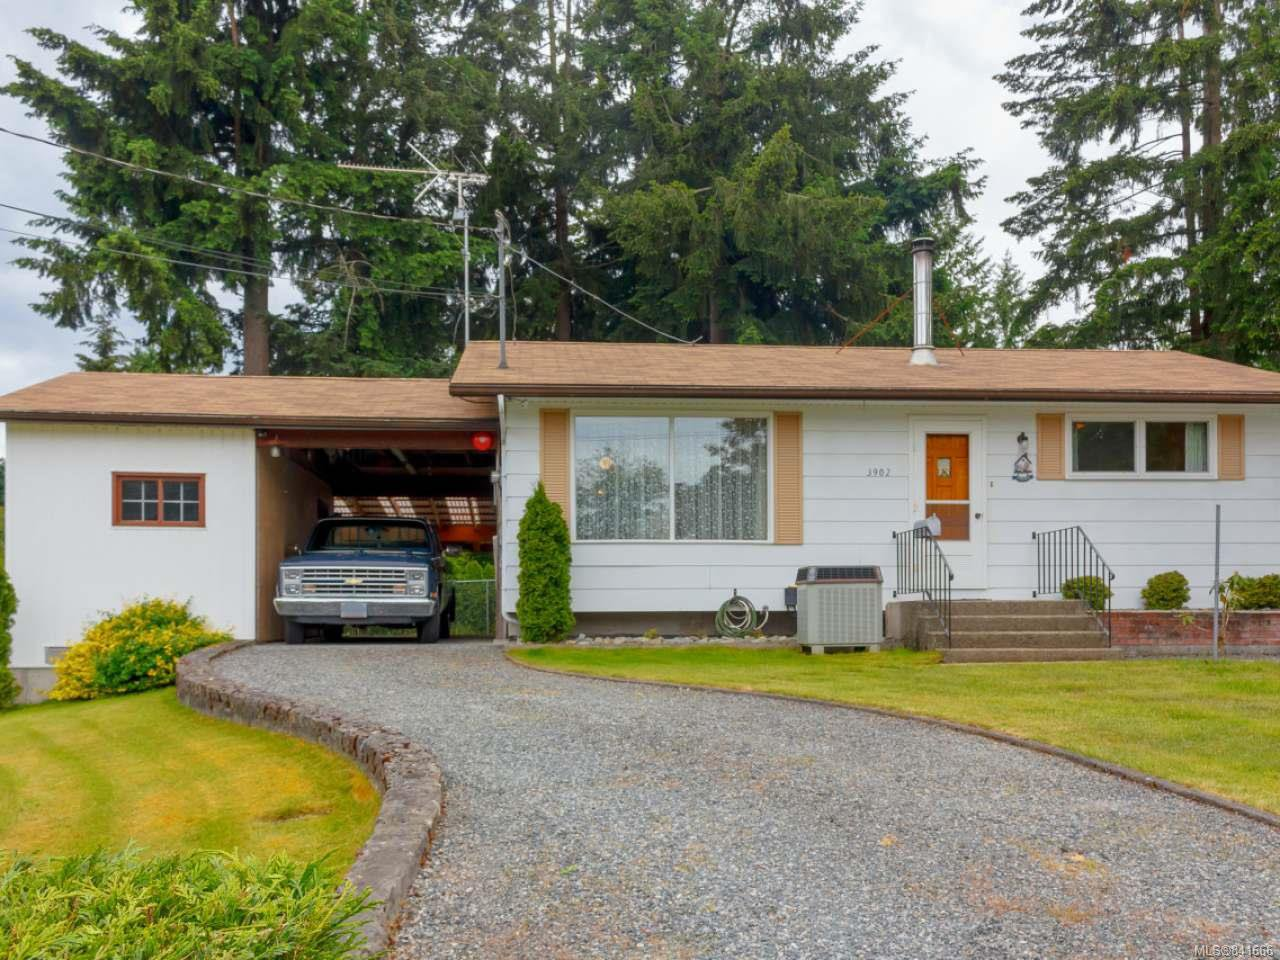 Main Photo: 3902 Saltair Rd in LADYSMITH: Du Saltair Single Family Detached for sale (Duncan)  : MLS®# 841666